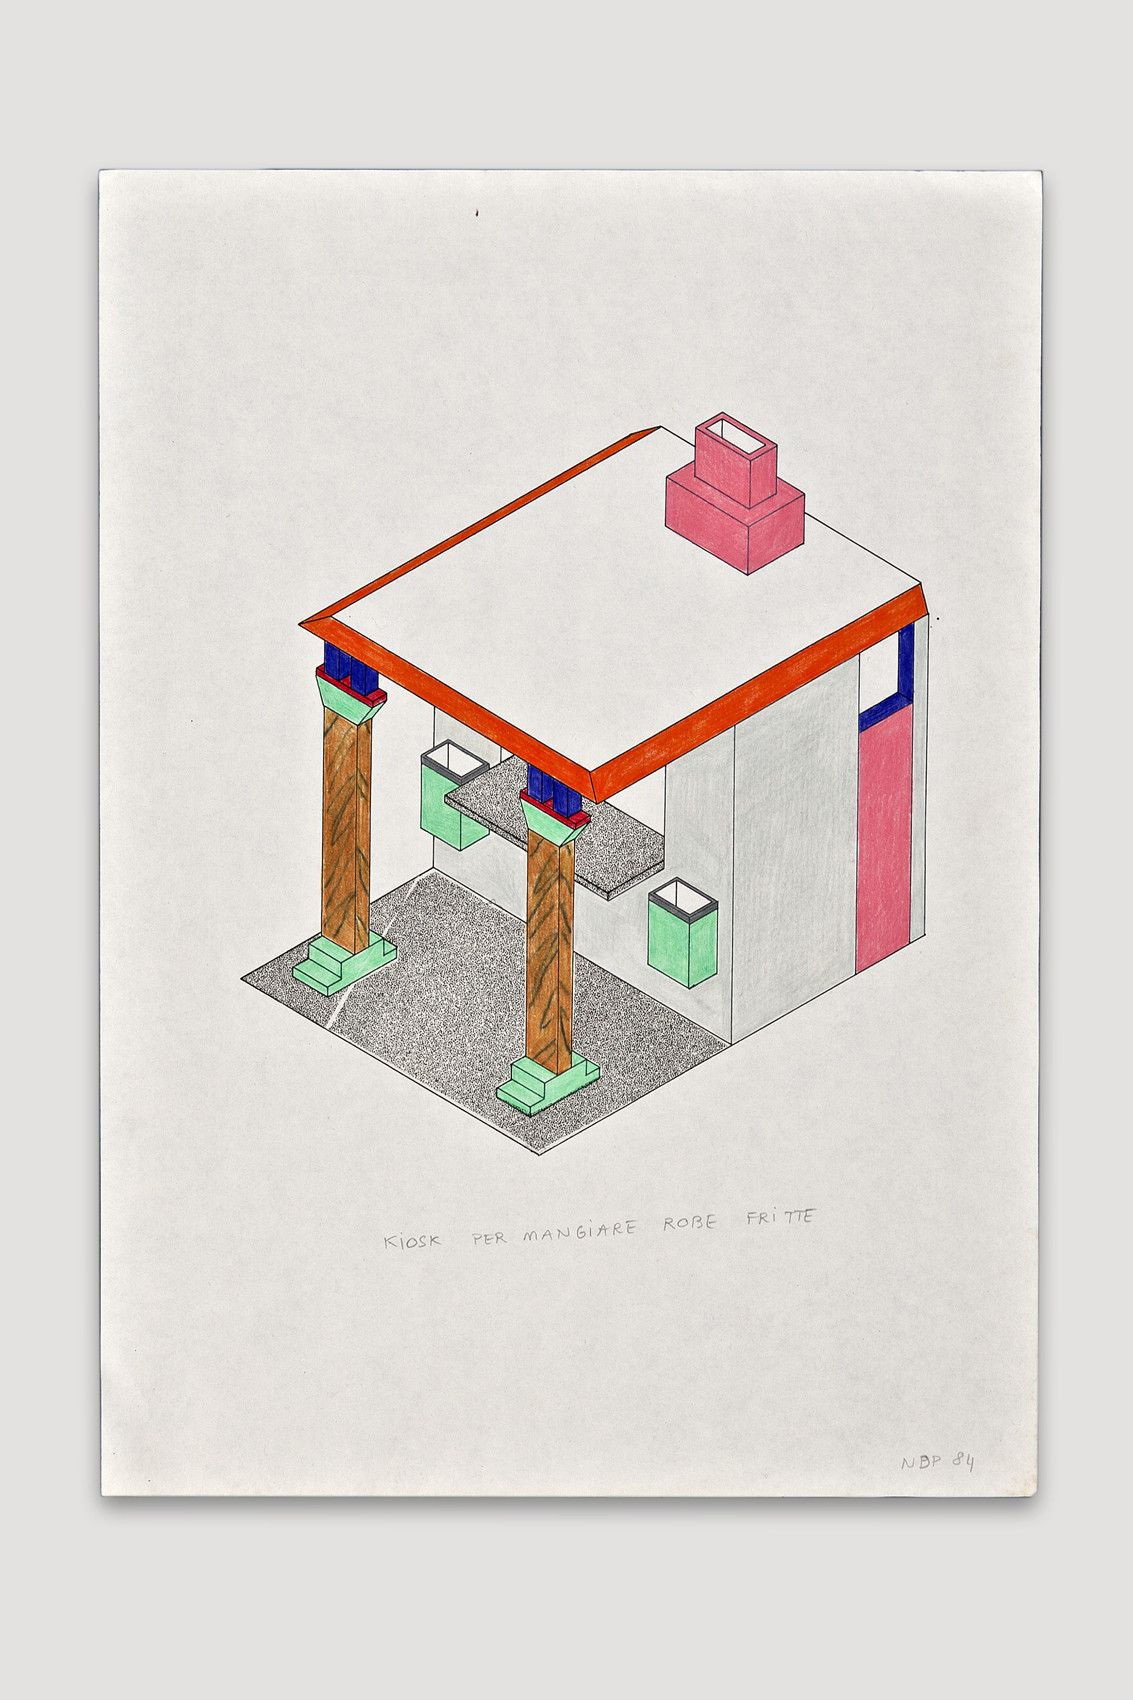 1133x1700 Kiosk Per Mangiare Robe Fritte Drawing By Nathalie Du Pasquier